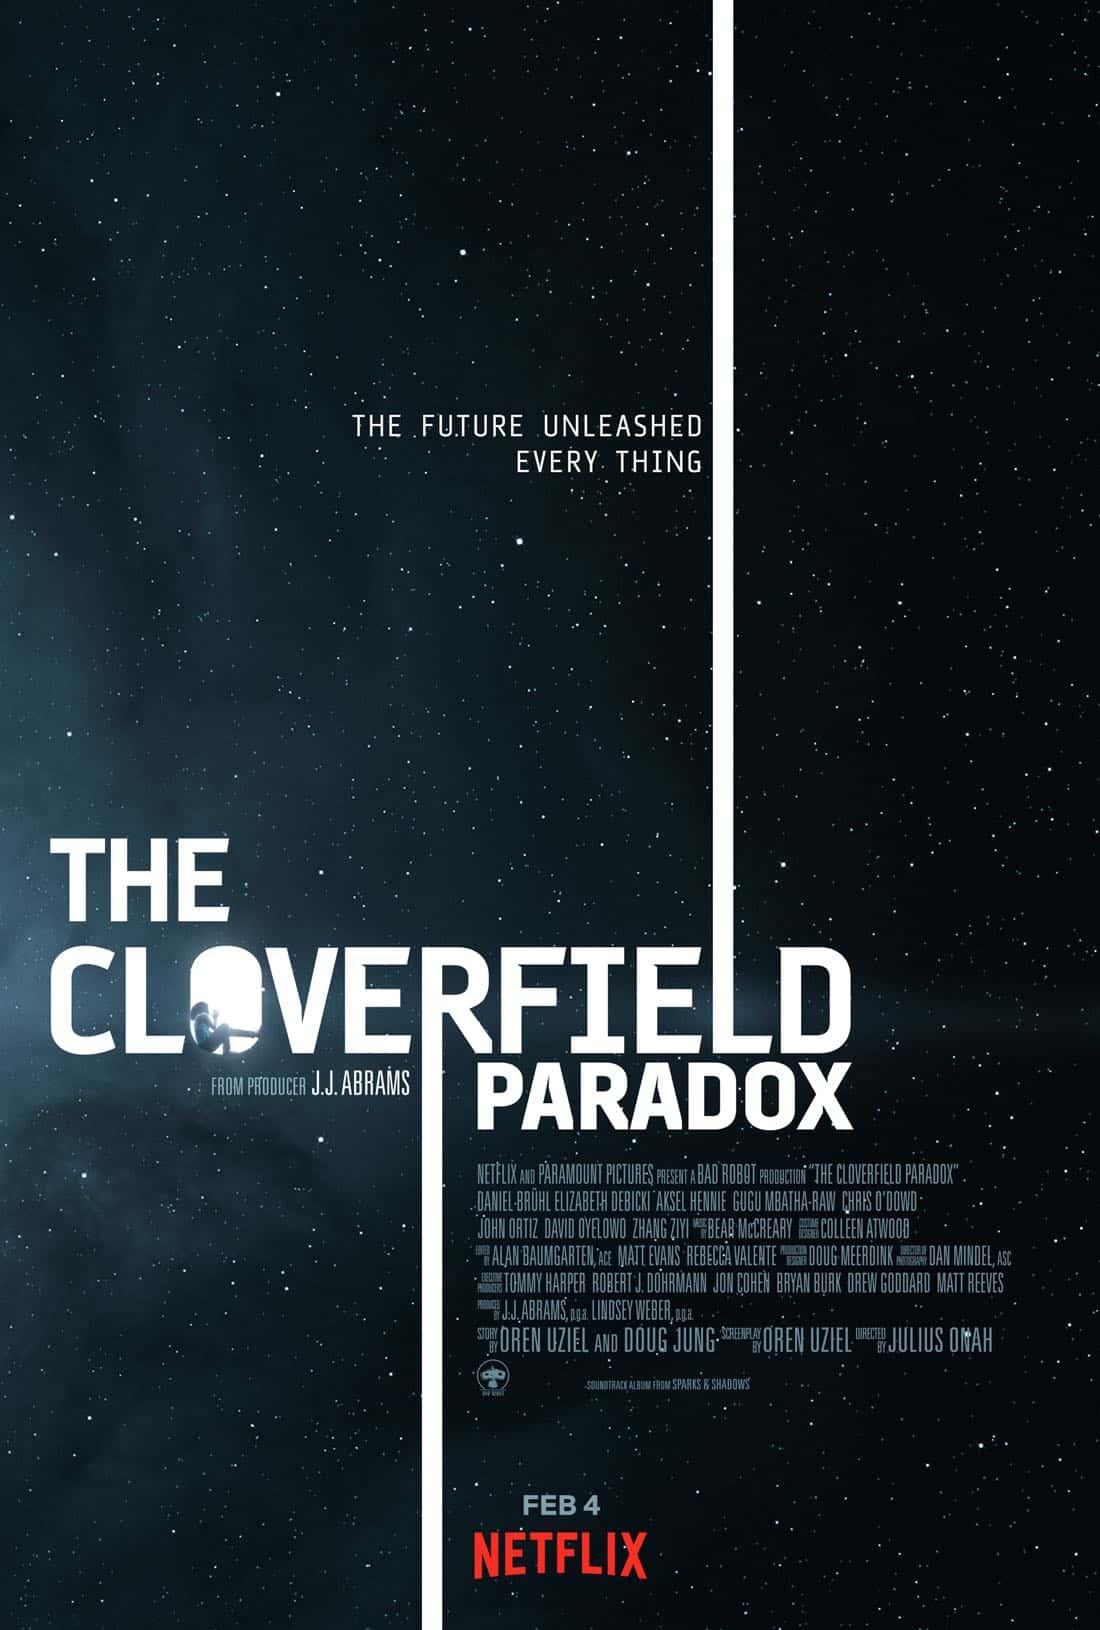 The-Cloverfield-Paradox-Poster-Key-Art